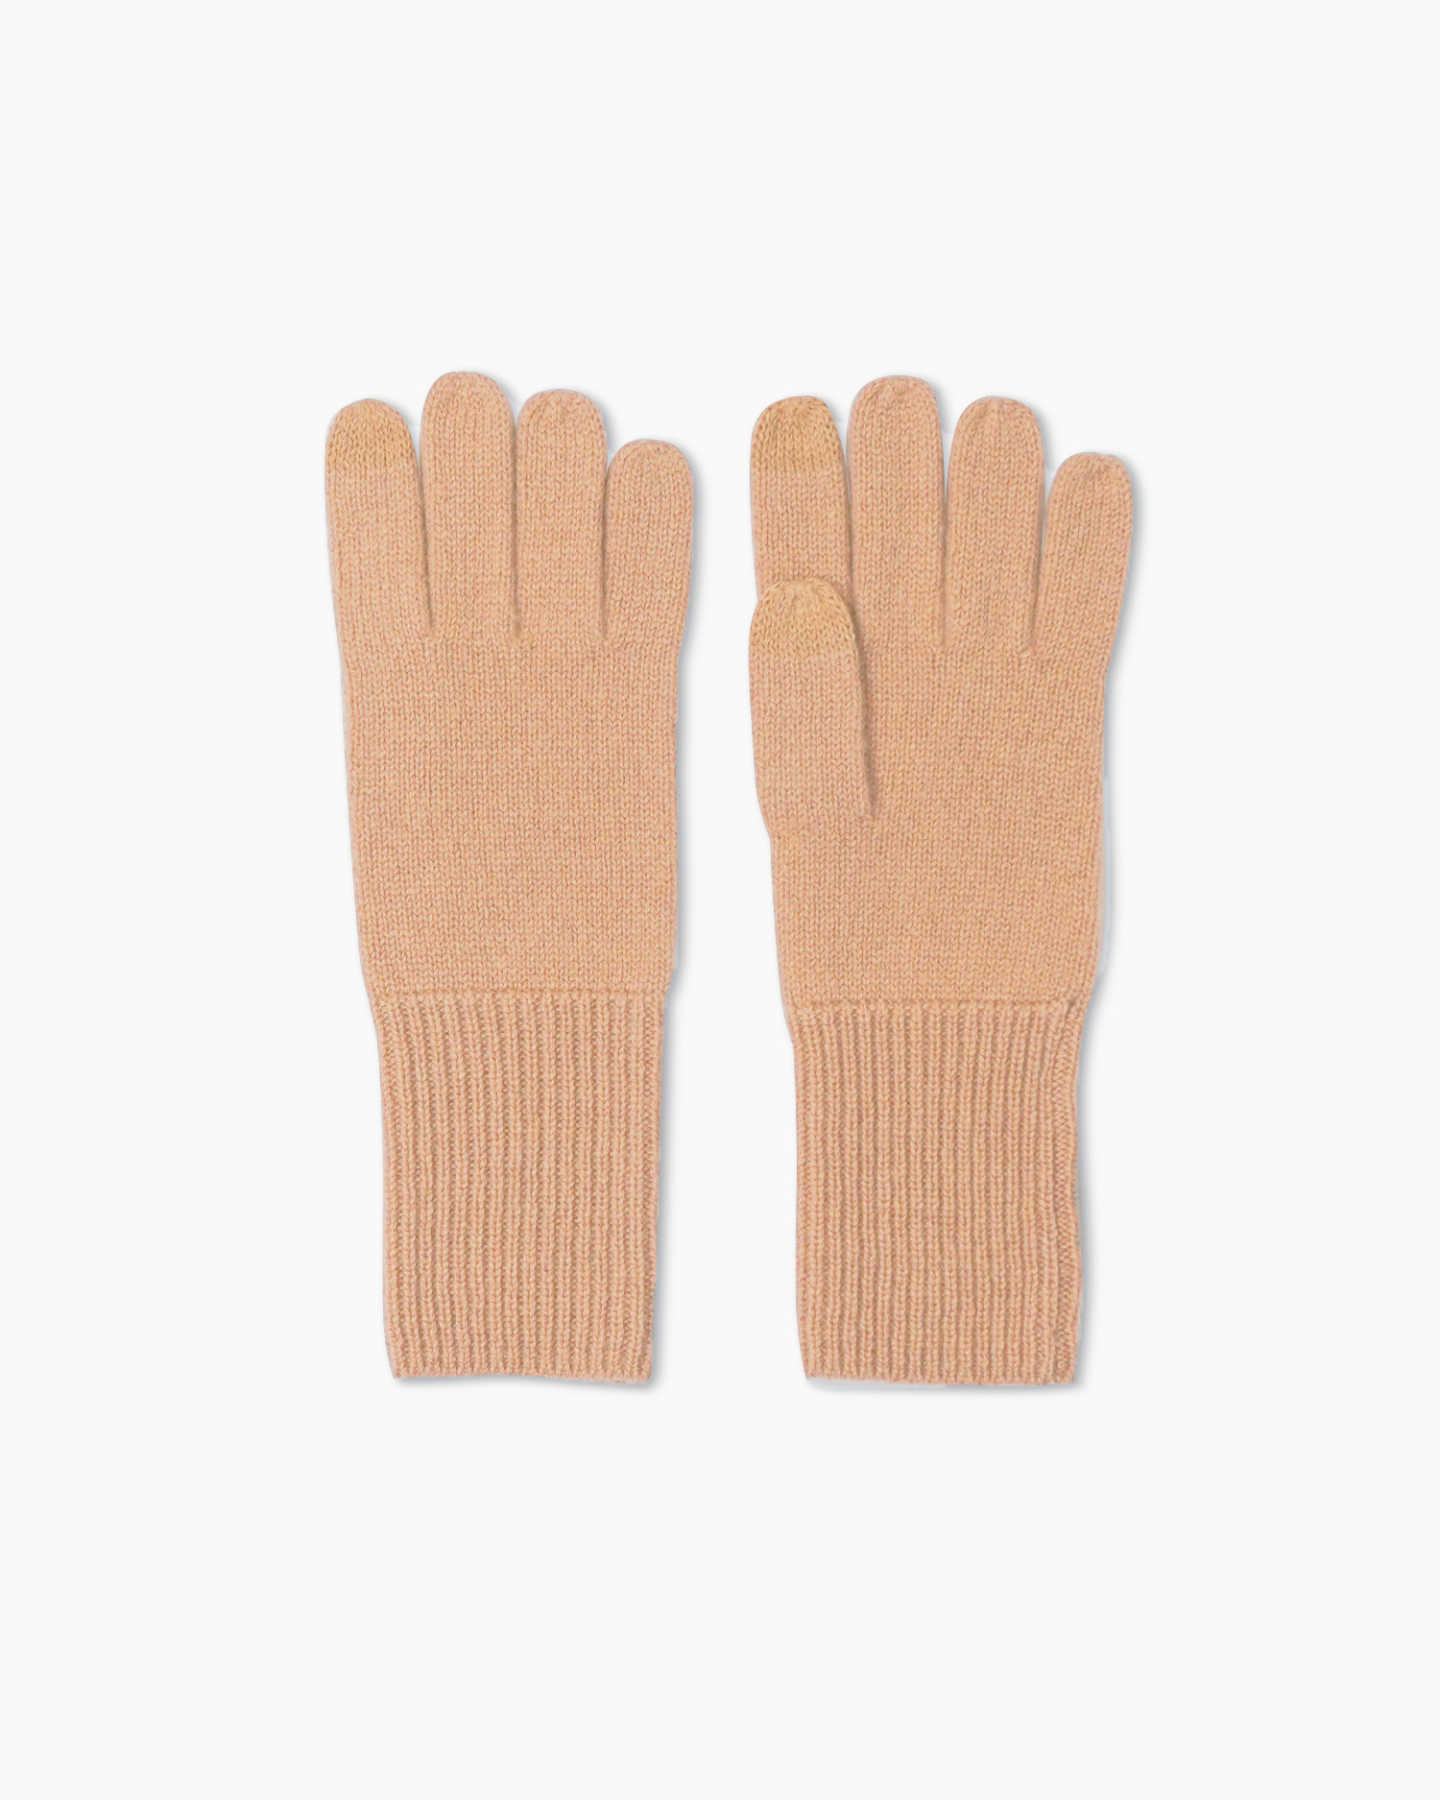 Mongolian Cashmere Gloves - Camel - 0